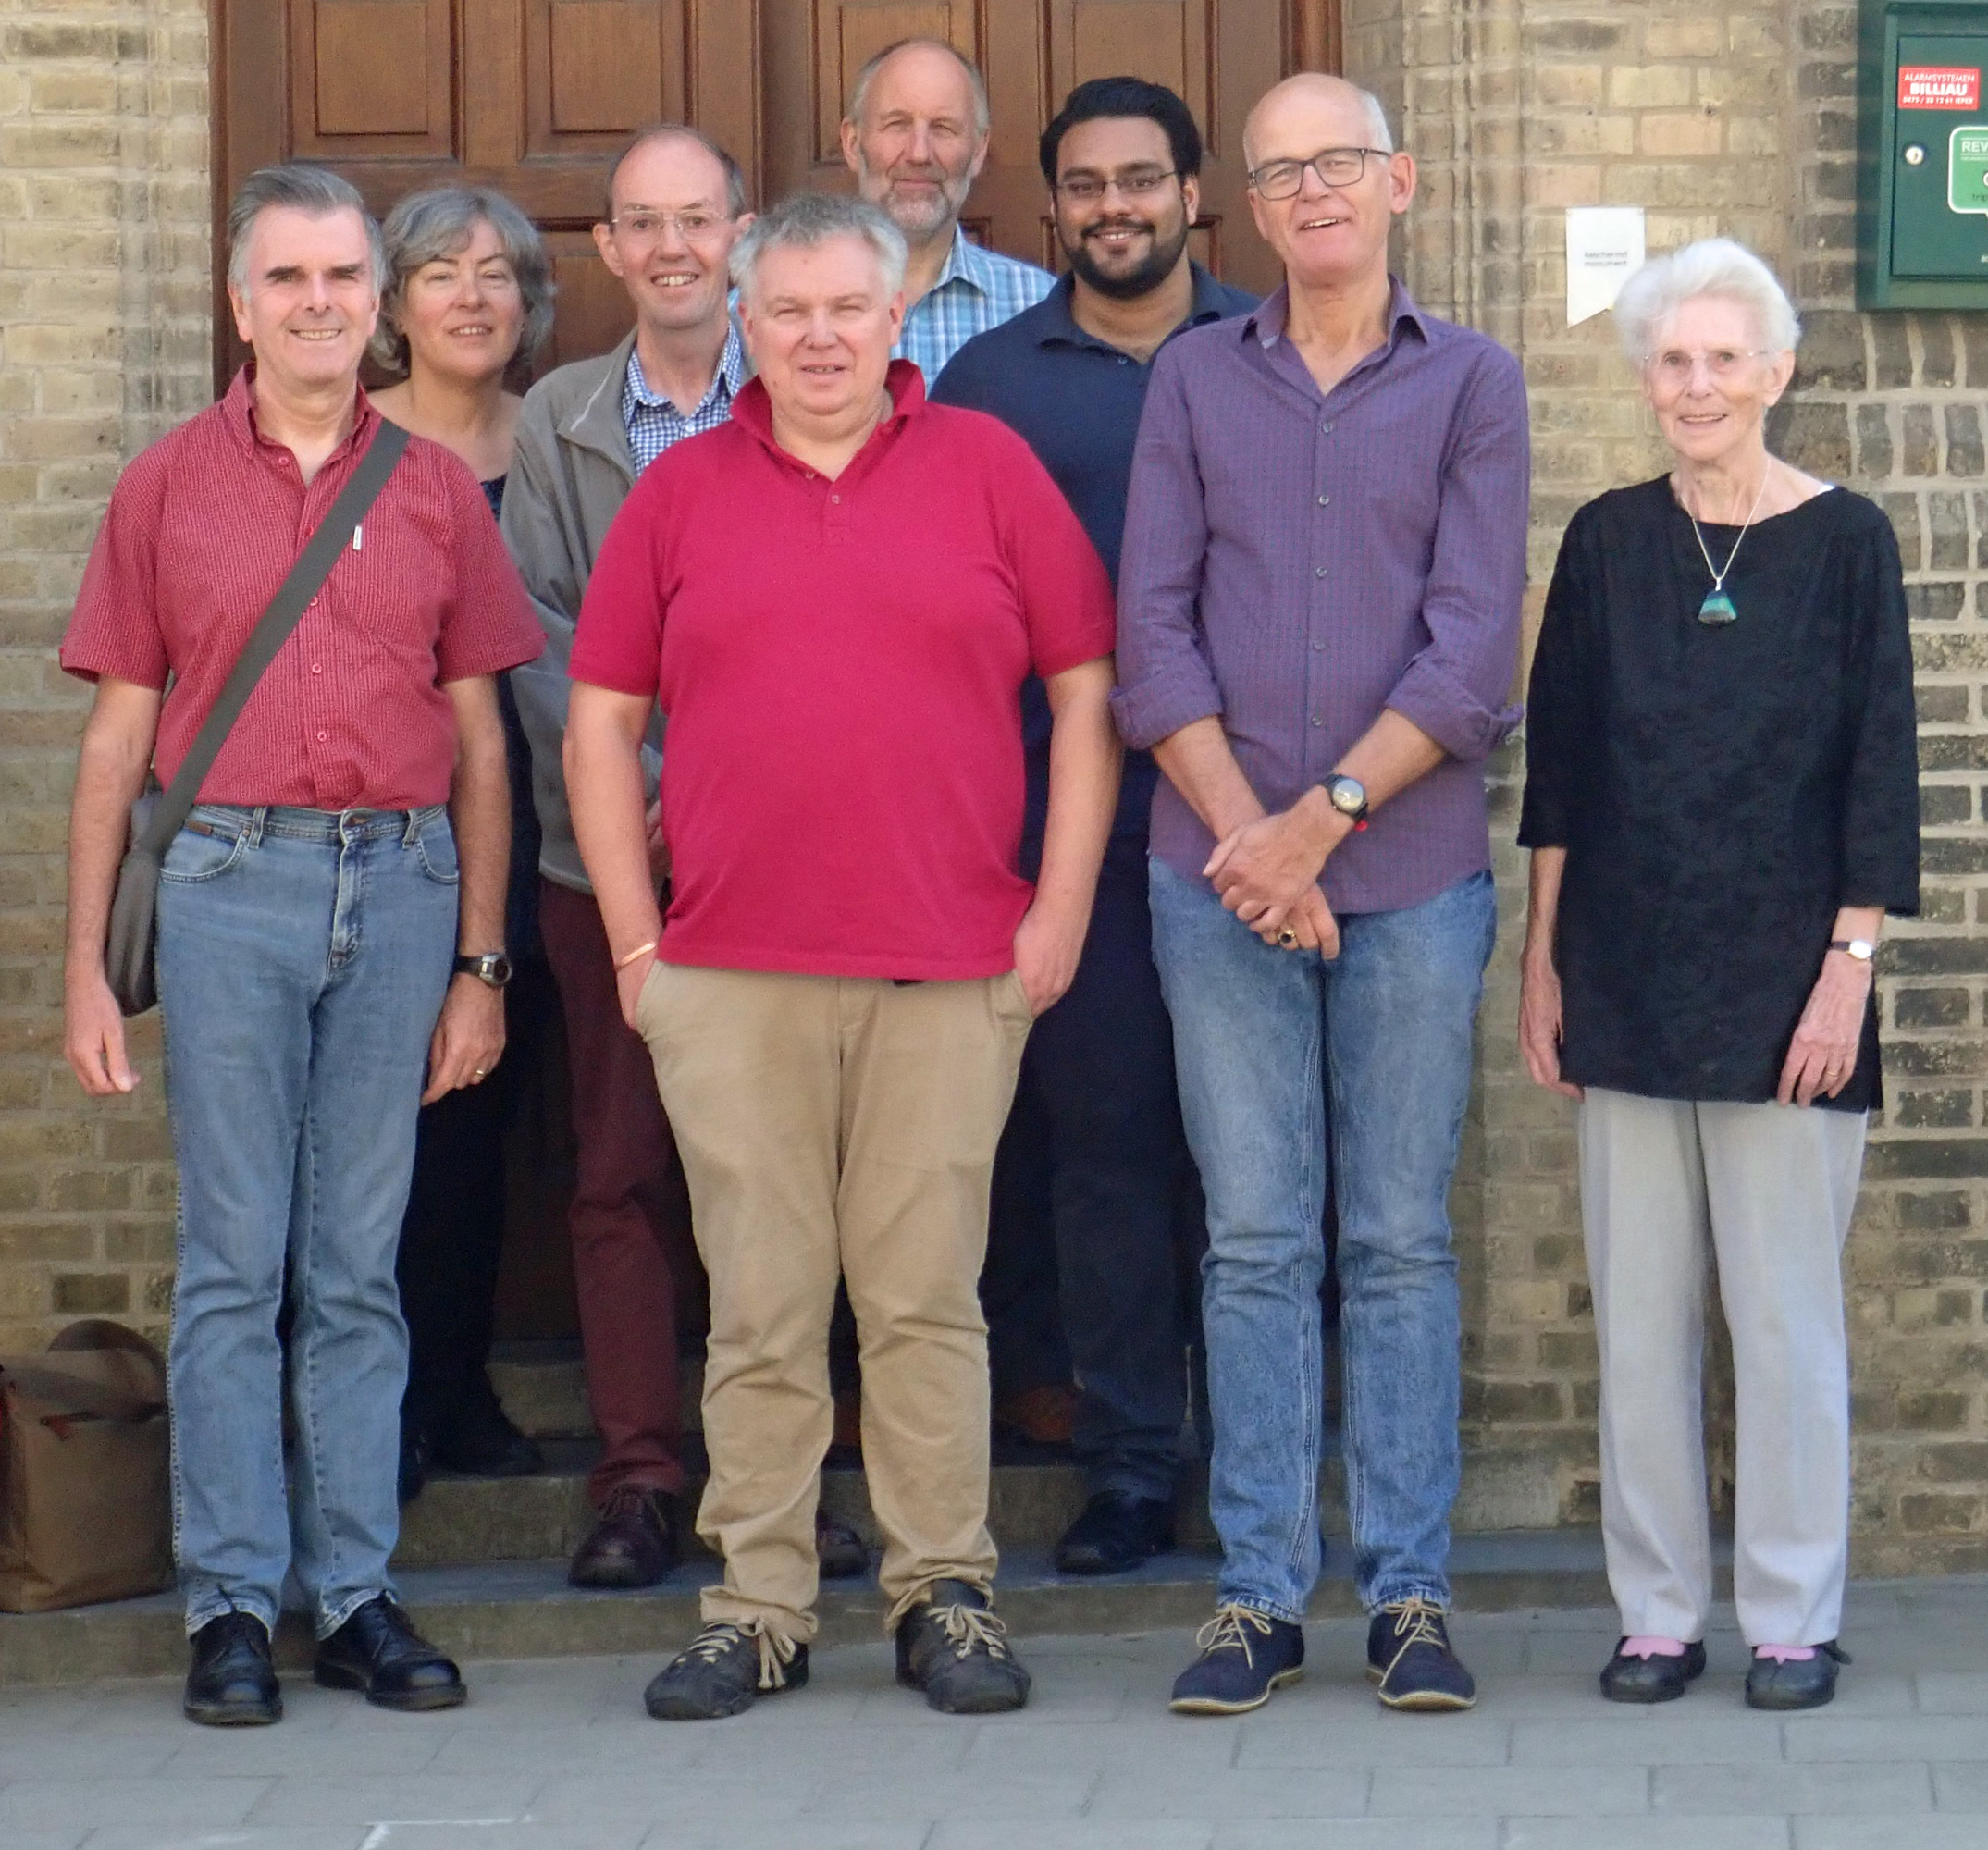 L-R, Keith, Debbie, Tim, Colin, Stephen, Rakhal, Alec and Margaret